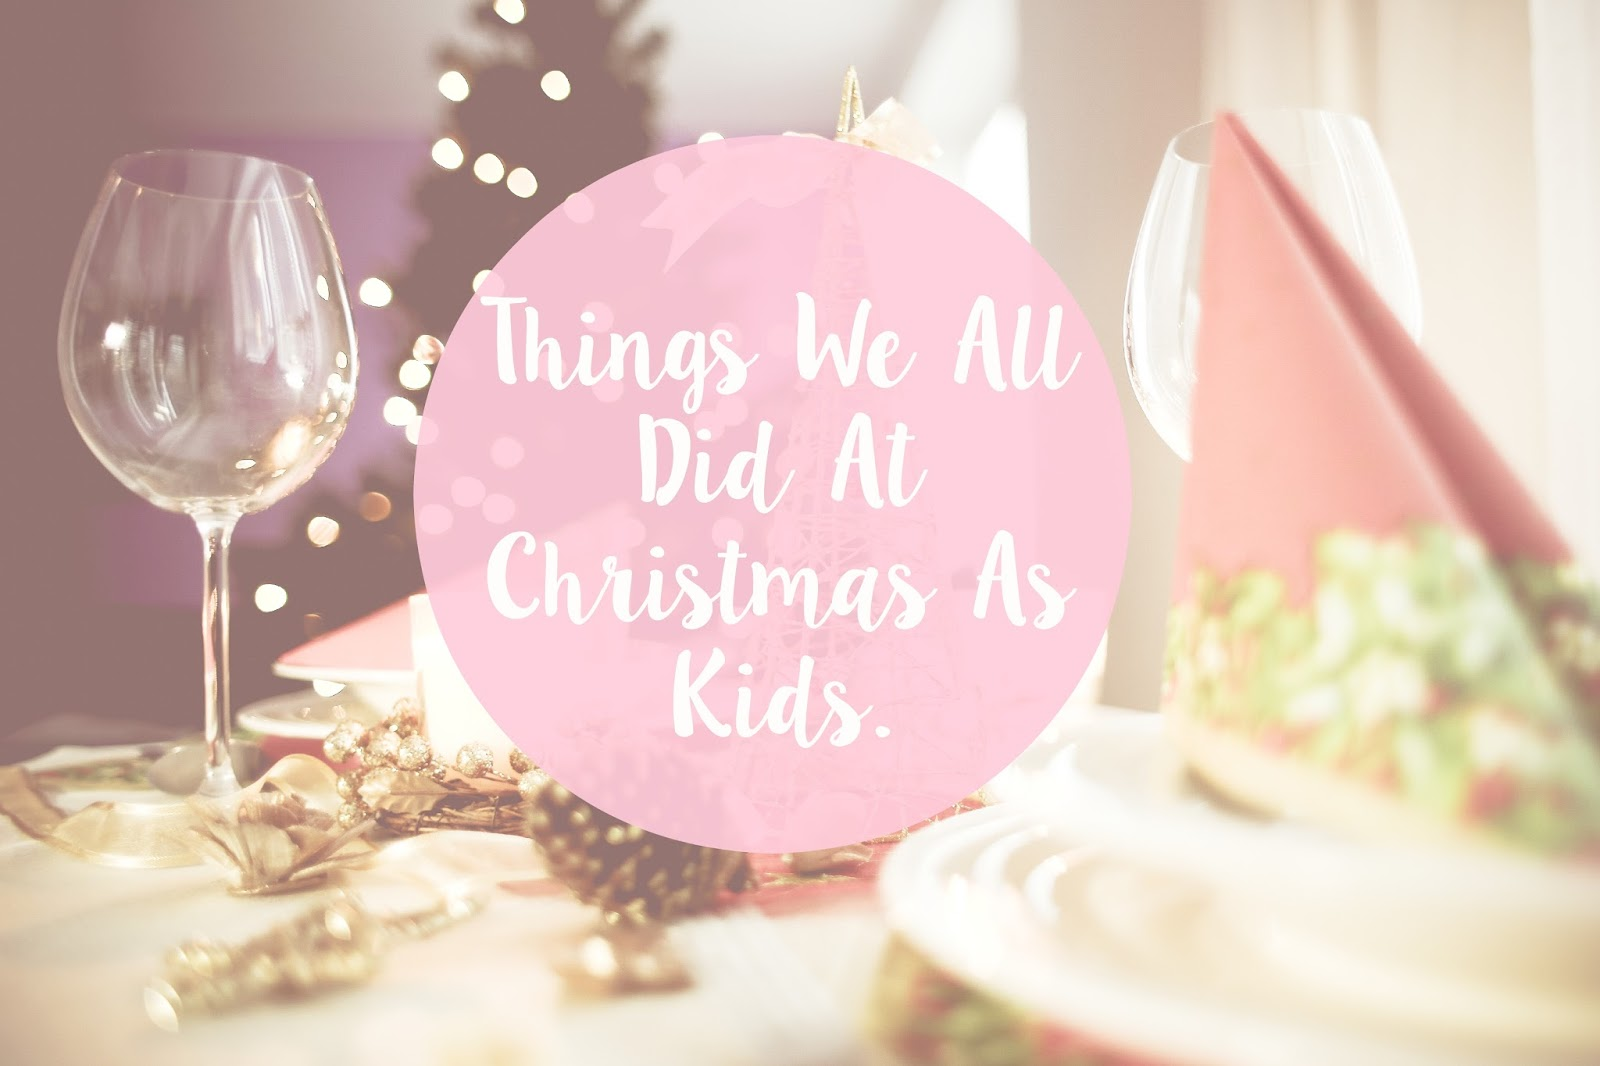 Lifestyle, Christmas, things we did was kids at christmas, children christmas memories, christmas in the 90s, nostalgia, festive,